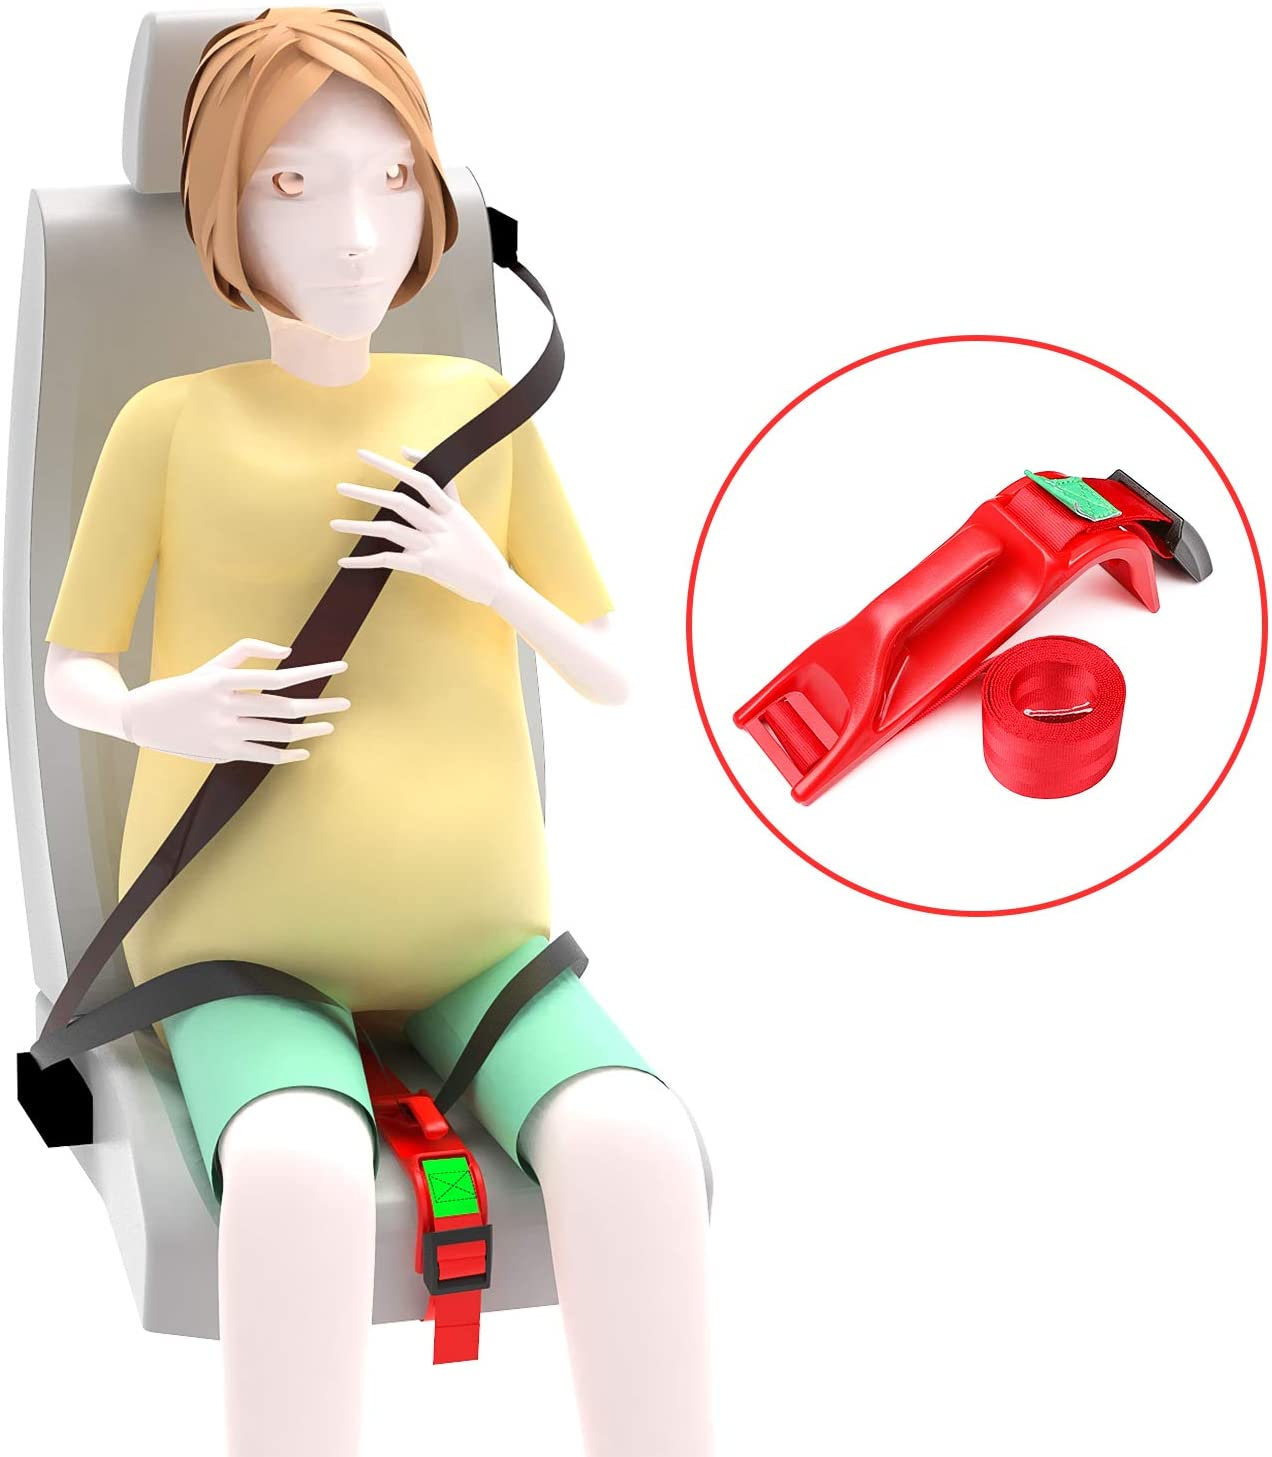 Comfort /& Safety to Protect Unborn Baby Maternity Car Belt Adjuster White Car Pregnant Belt for Expectant Mothers Beyee Pregnancy Seat Belt